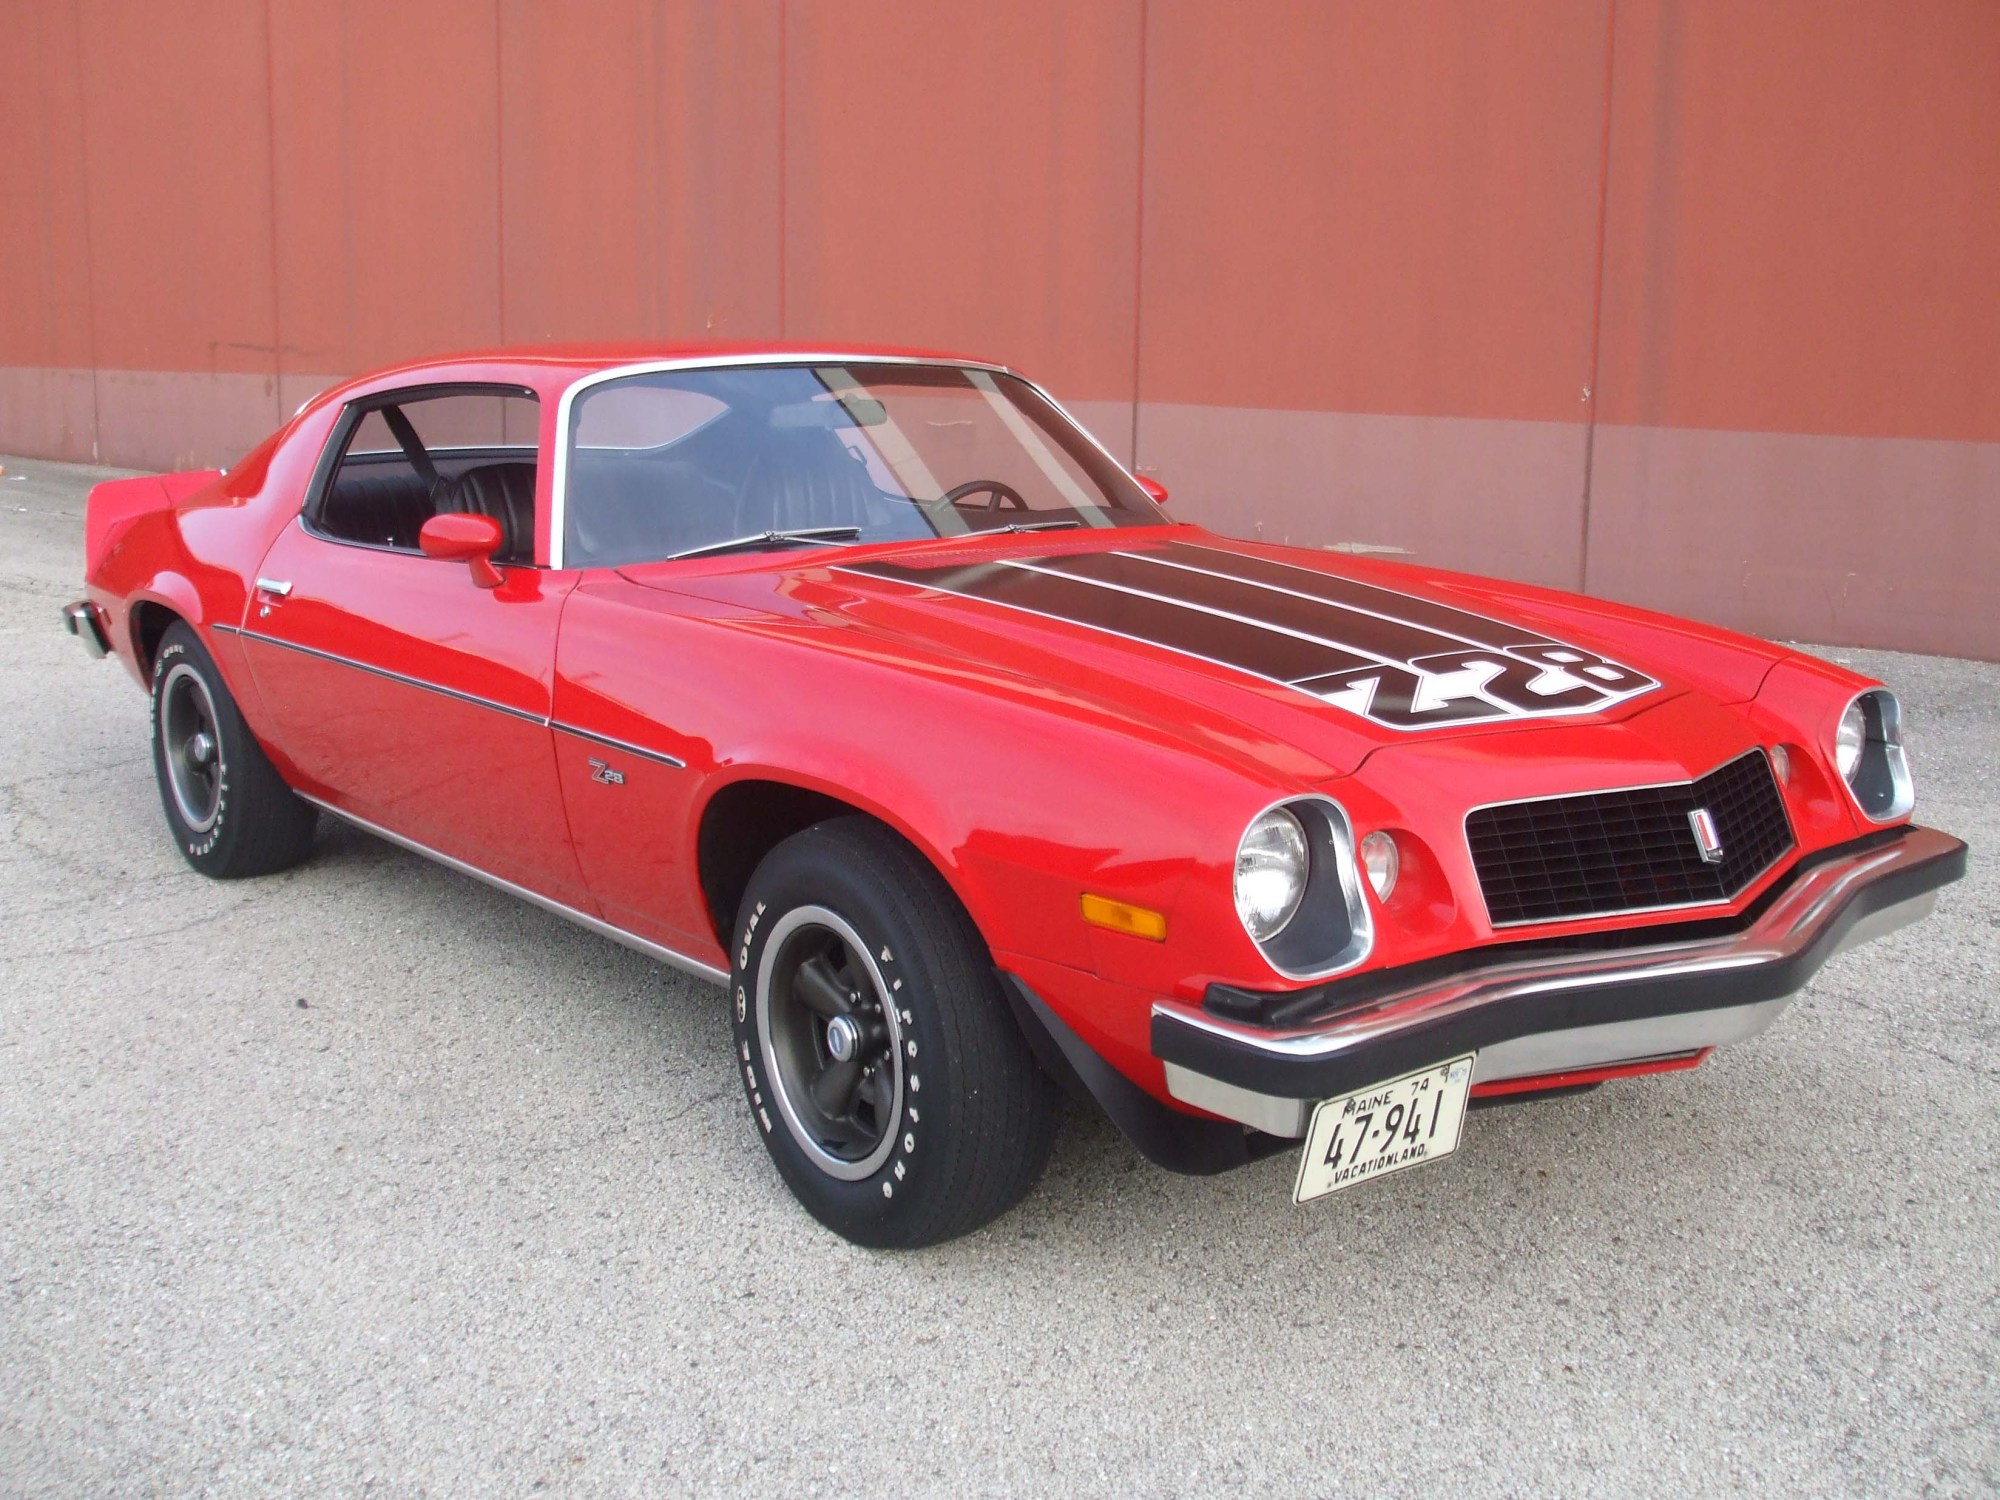 hight resolution of reader s ride after looking 34 years he finds 1974 chevrolet camaro z28 of his dreams